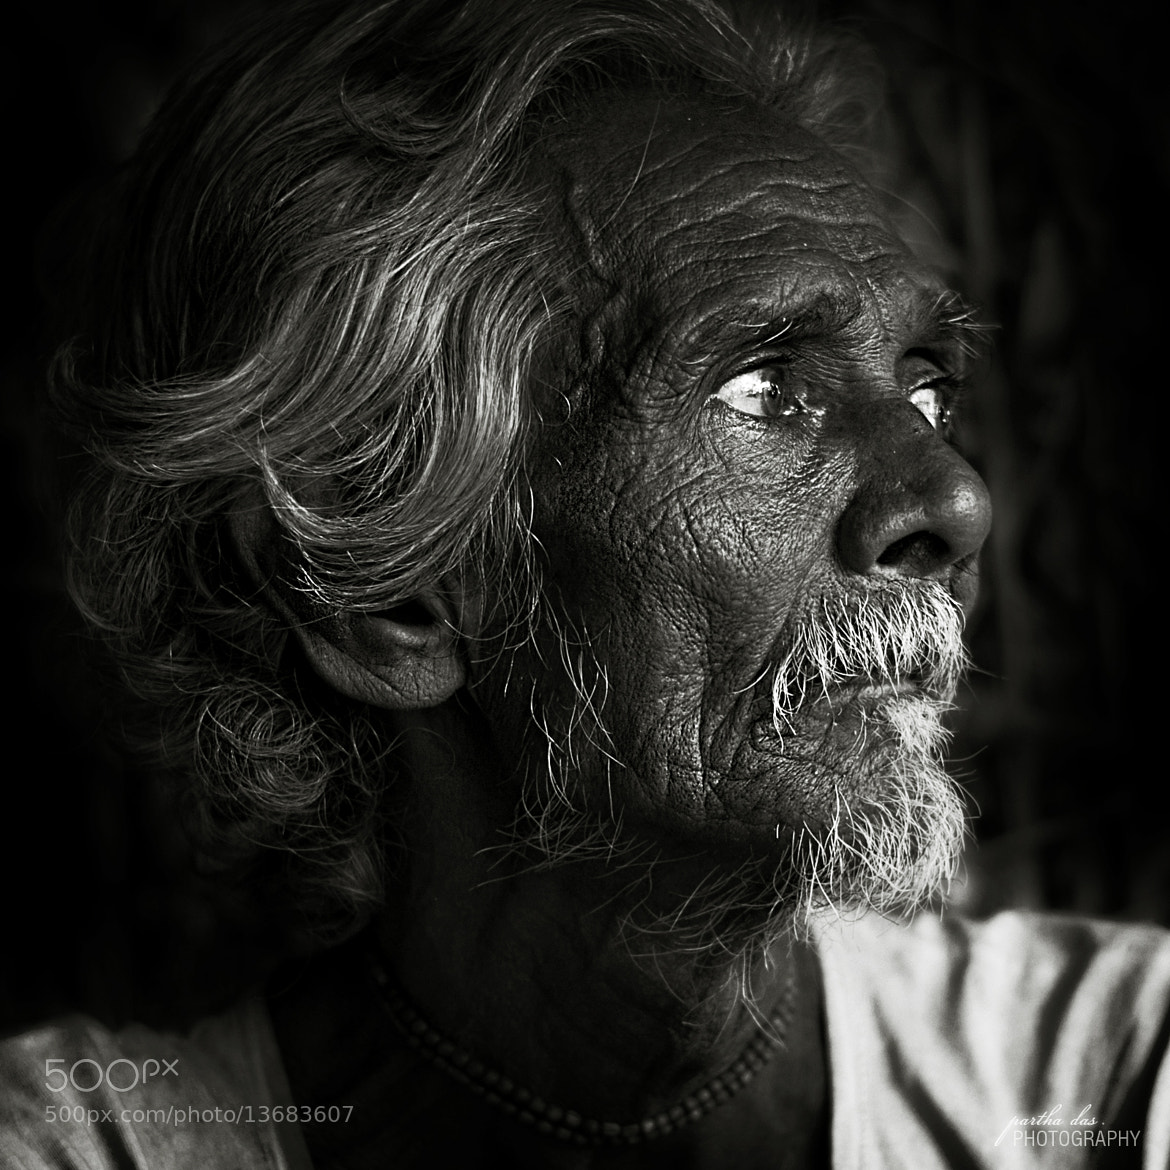 Photograph me and my thoughts! by Partha Das on 500px